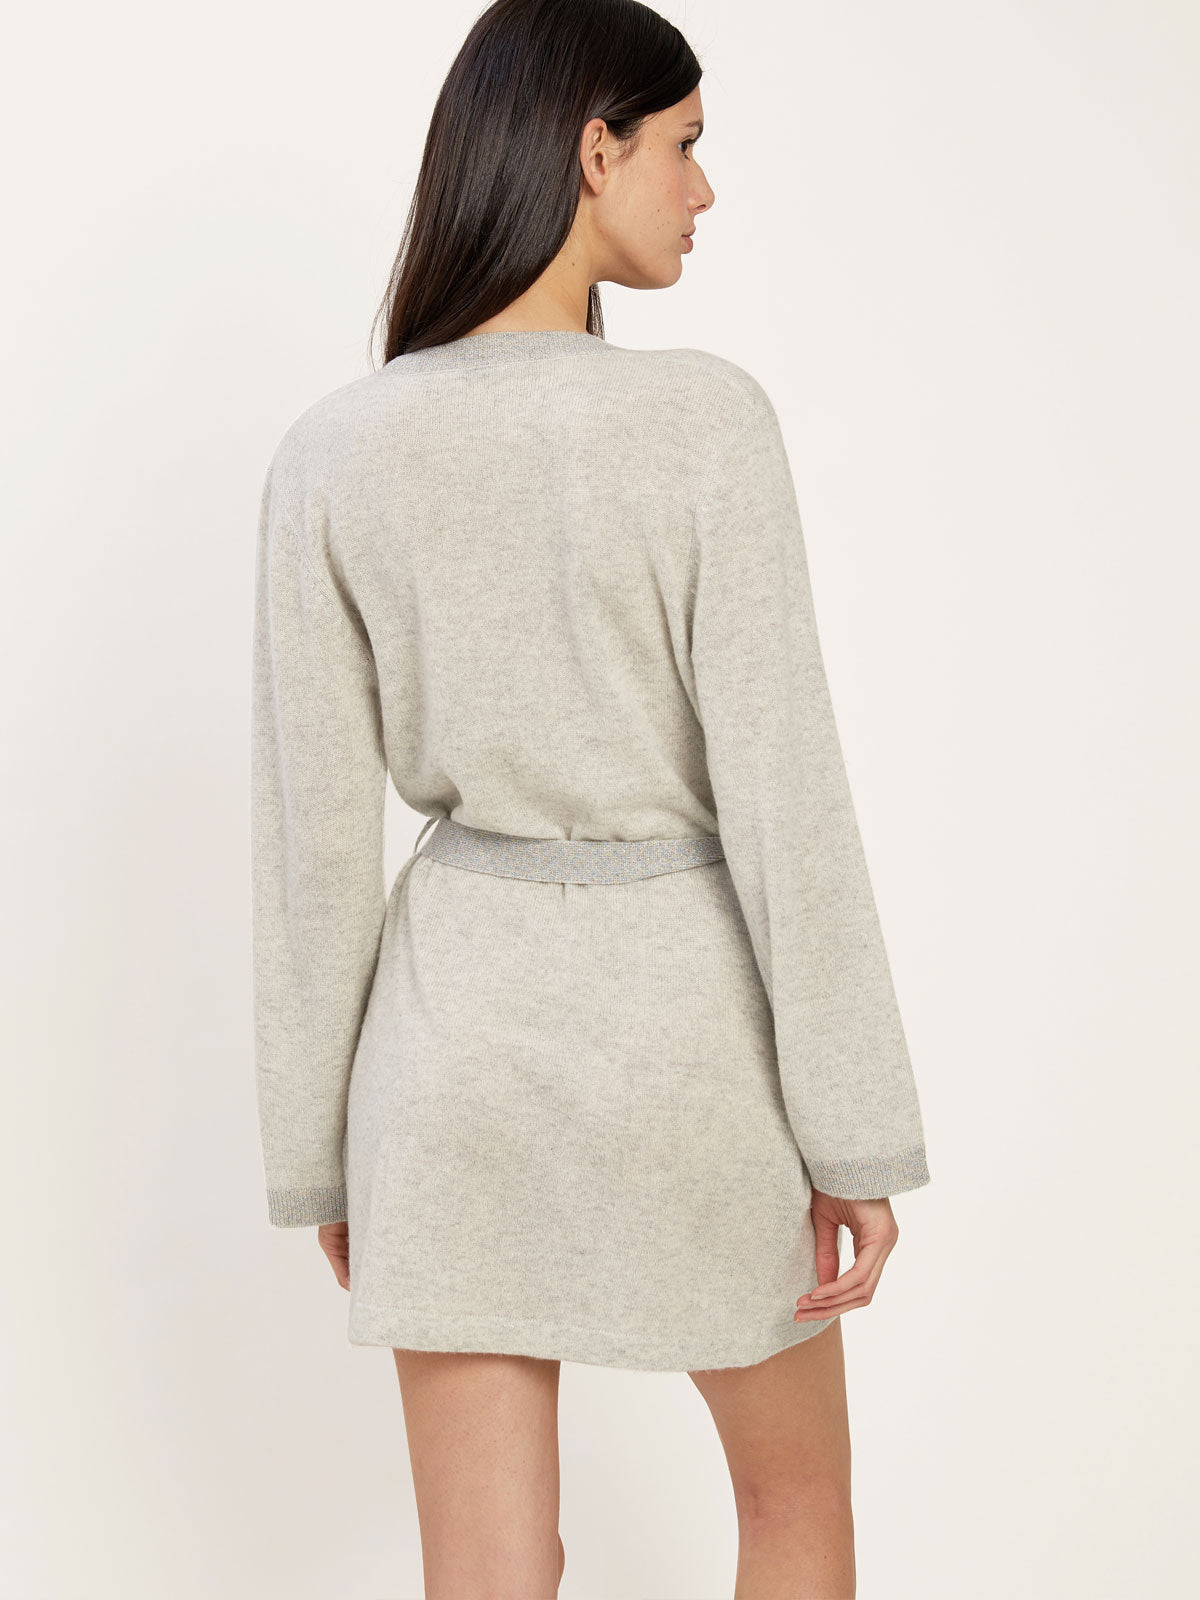 Bella Robe in Cashmere Pale Gray By Morgan Lane